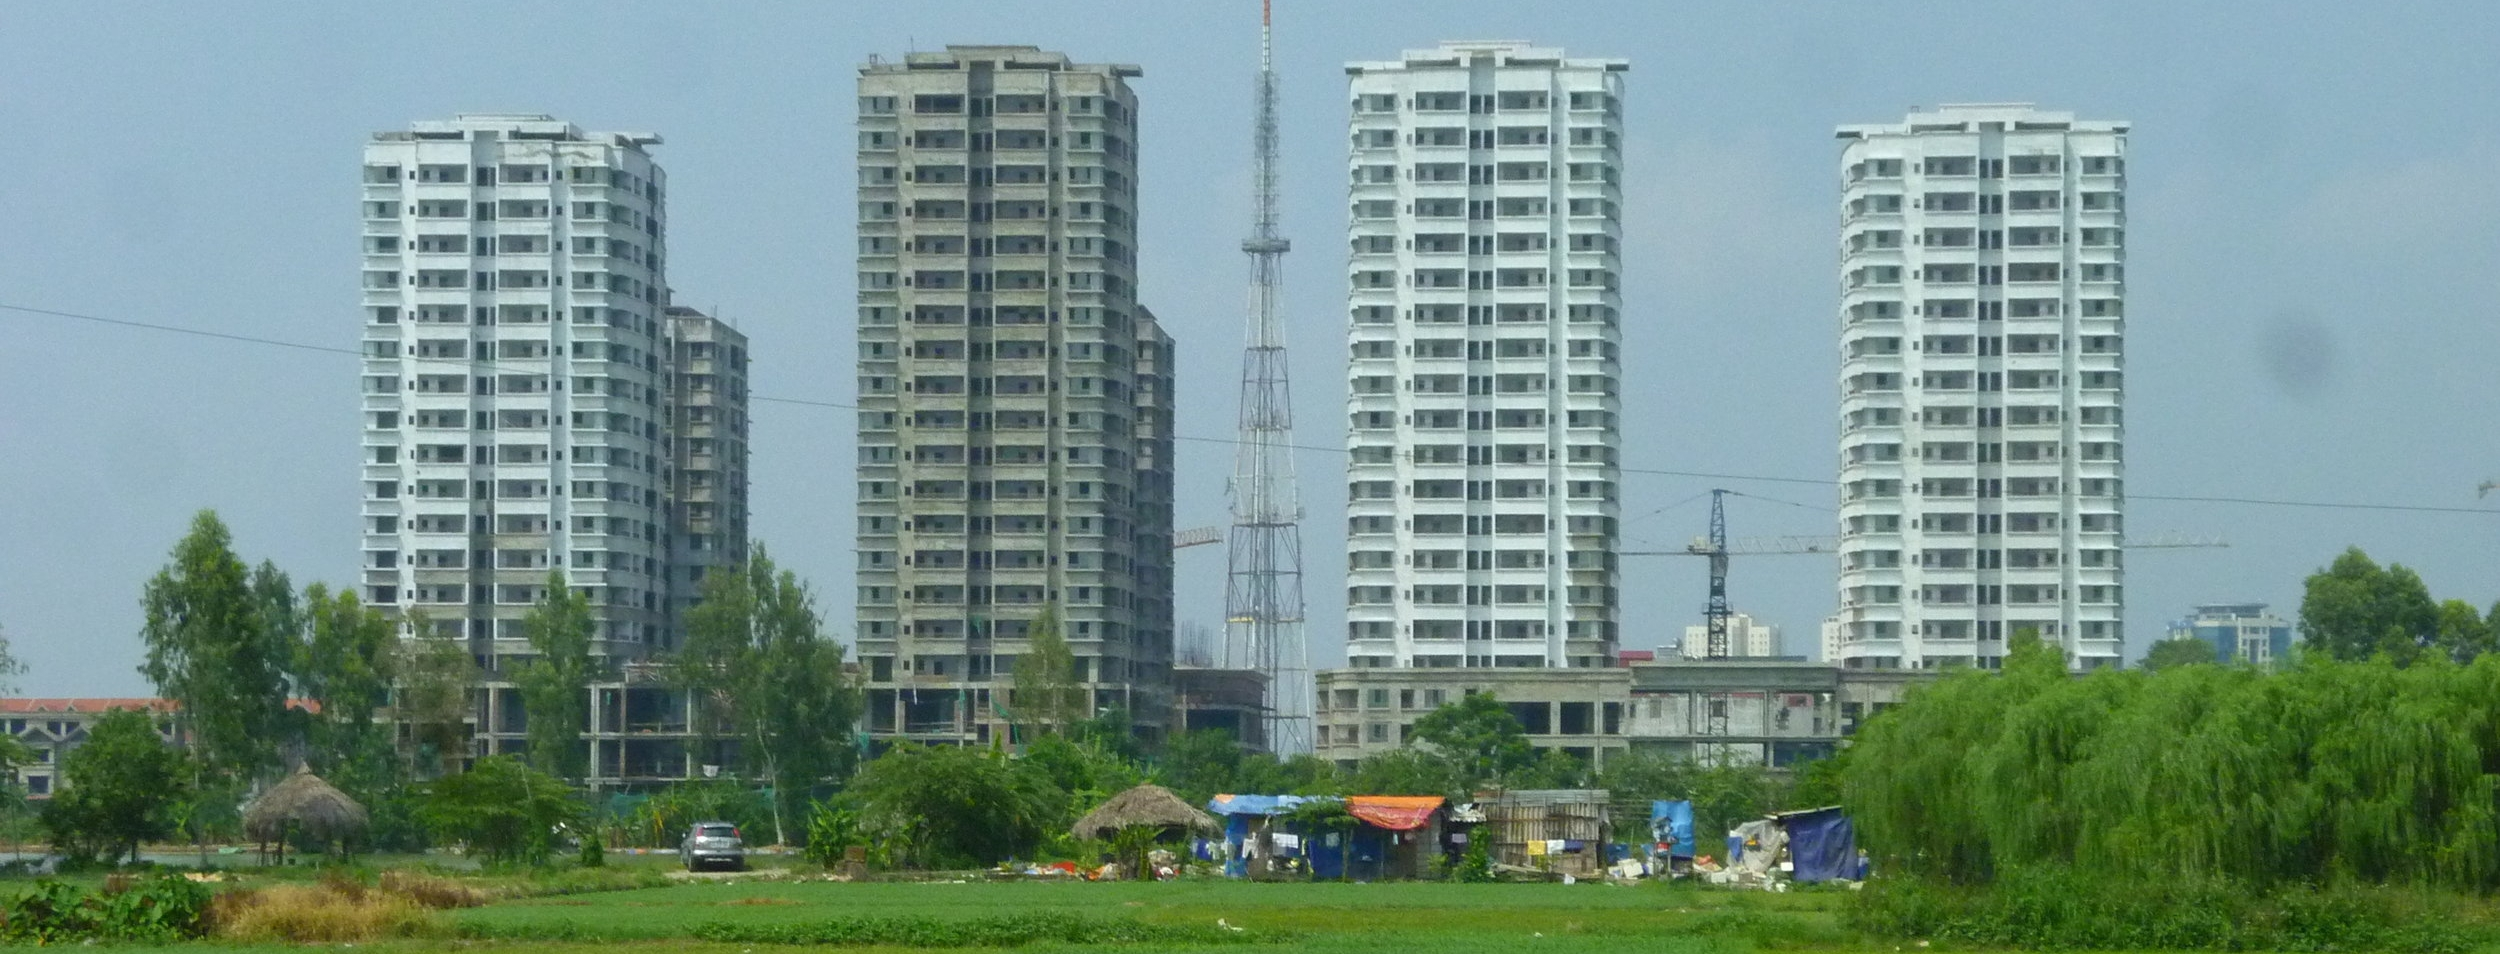 A new mixed-use development rises from the paddy fields on the periphery of Hanoi. Photo by Clément Musil (2012).